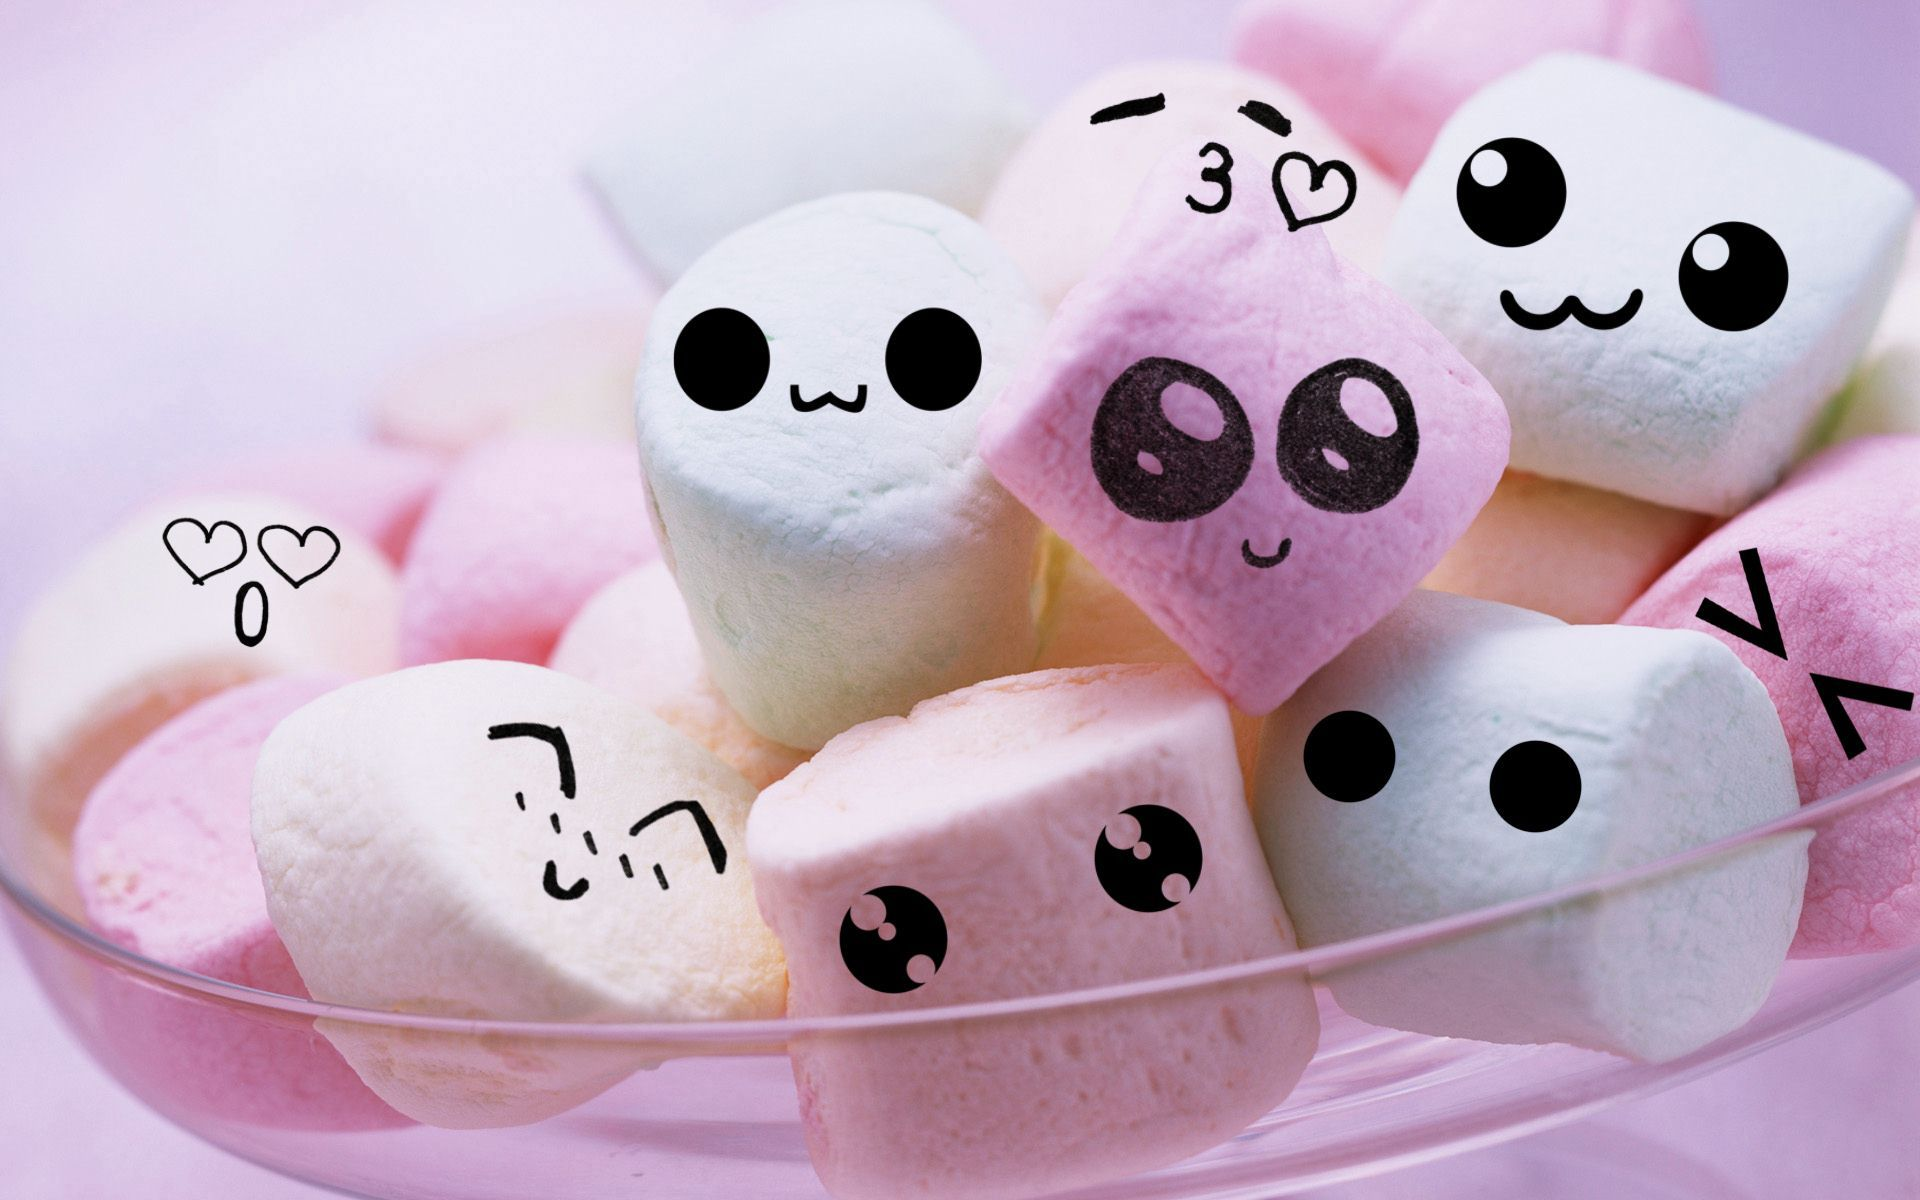 Cute Marshmallow Images Google Search Cute Marshmallows Marshmallow Images Cute Images For Wallpaper